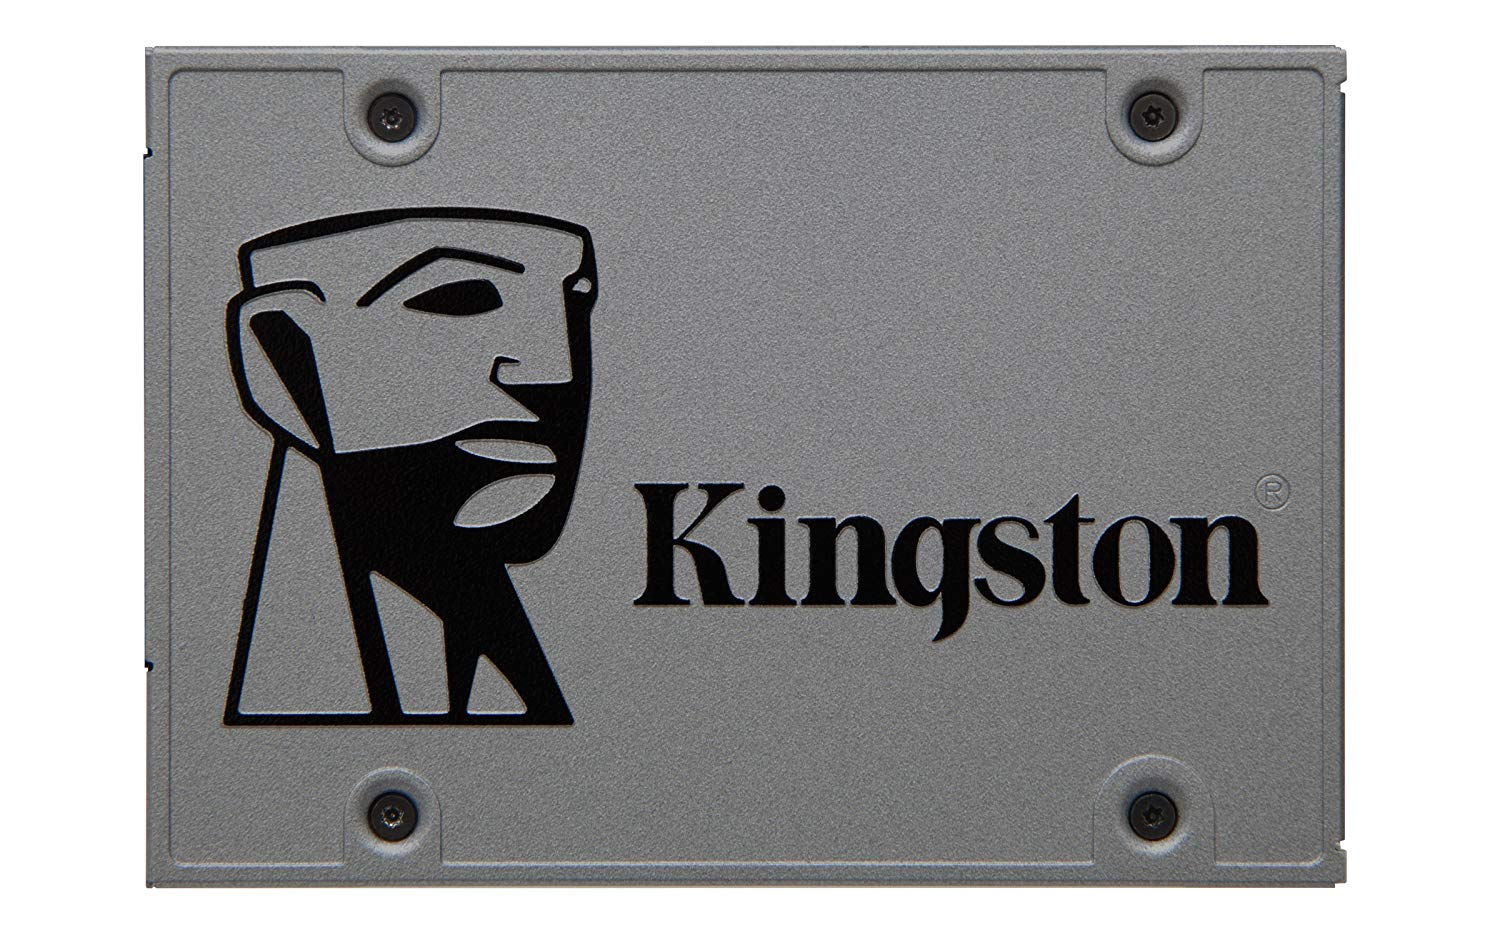 Kingston SSD amazon